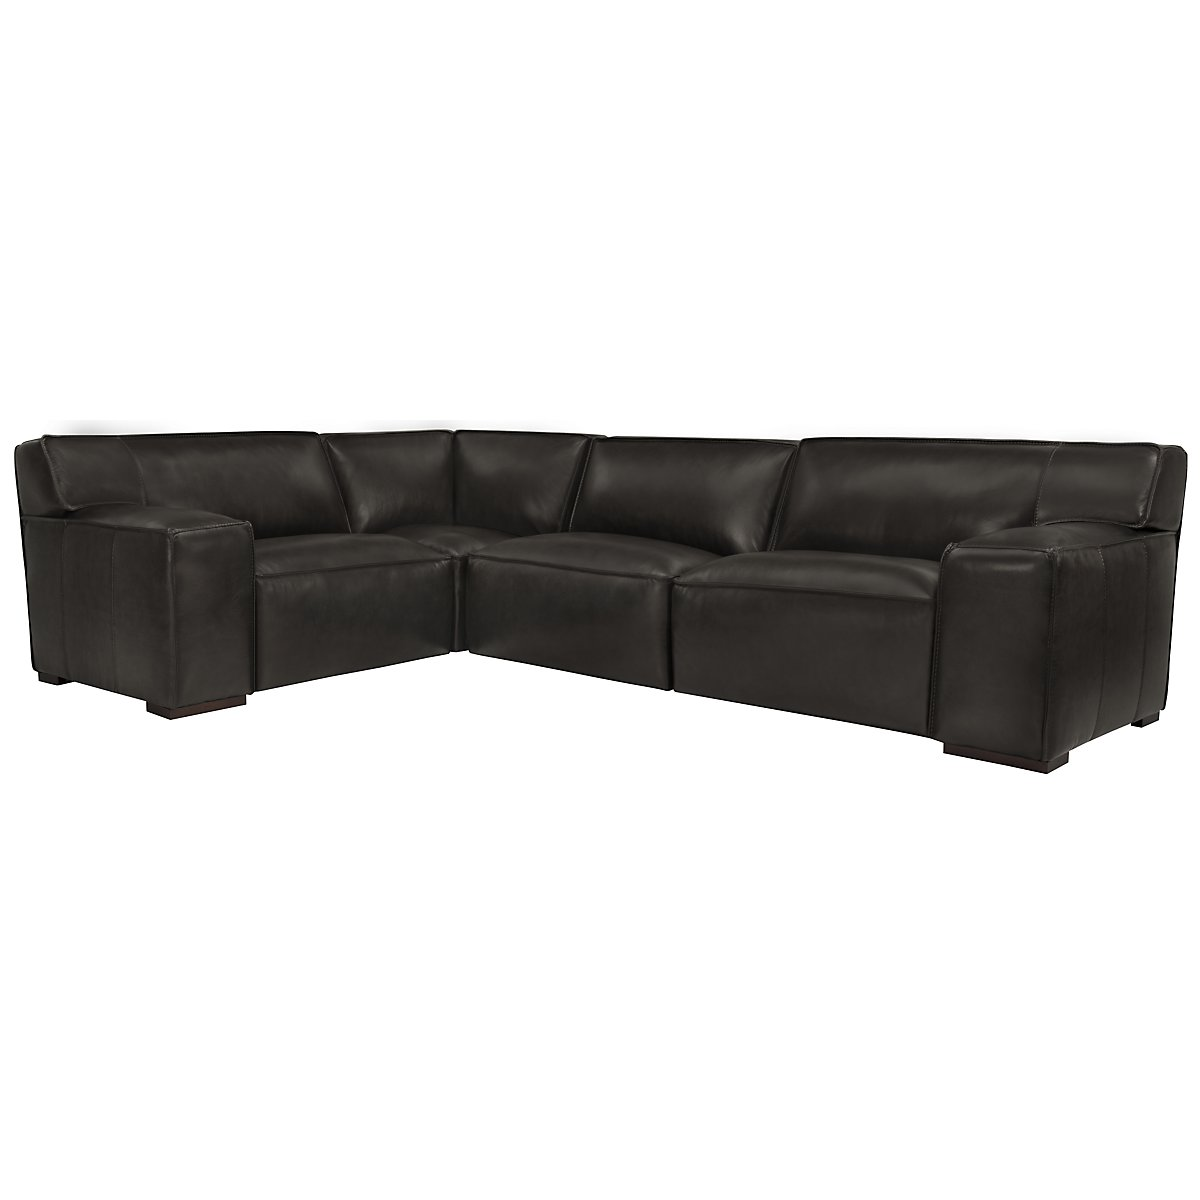 Asher Dk Gray Leather & Vinyl Small Two-Arm Sectional